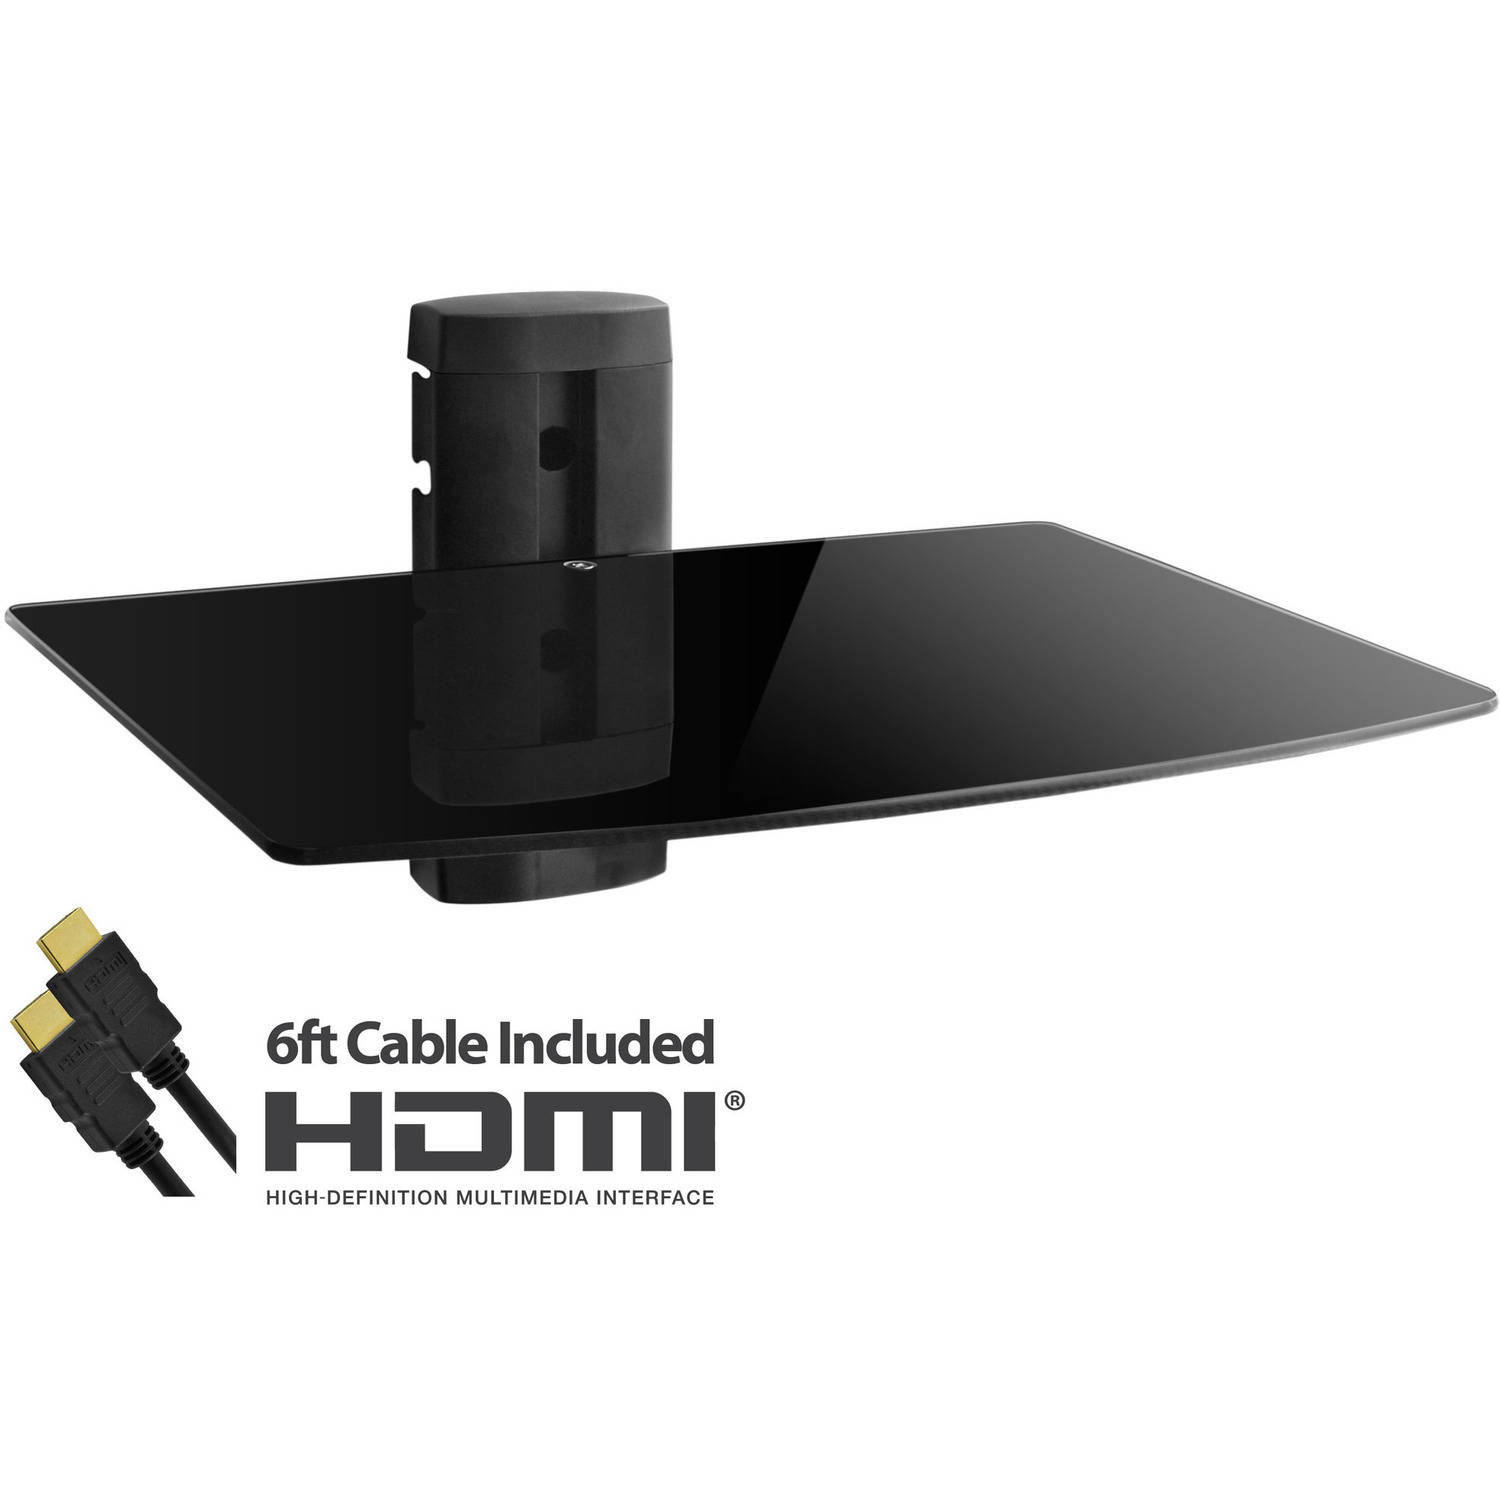 Adjustable Shelf for DVD Players, Cable Boxes/Receivers, and Gaming Consoles with HDMI Cable (UL Certified)